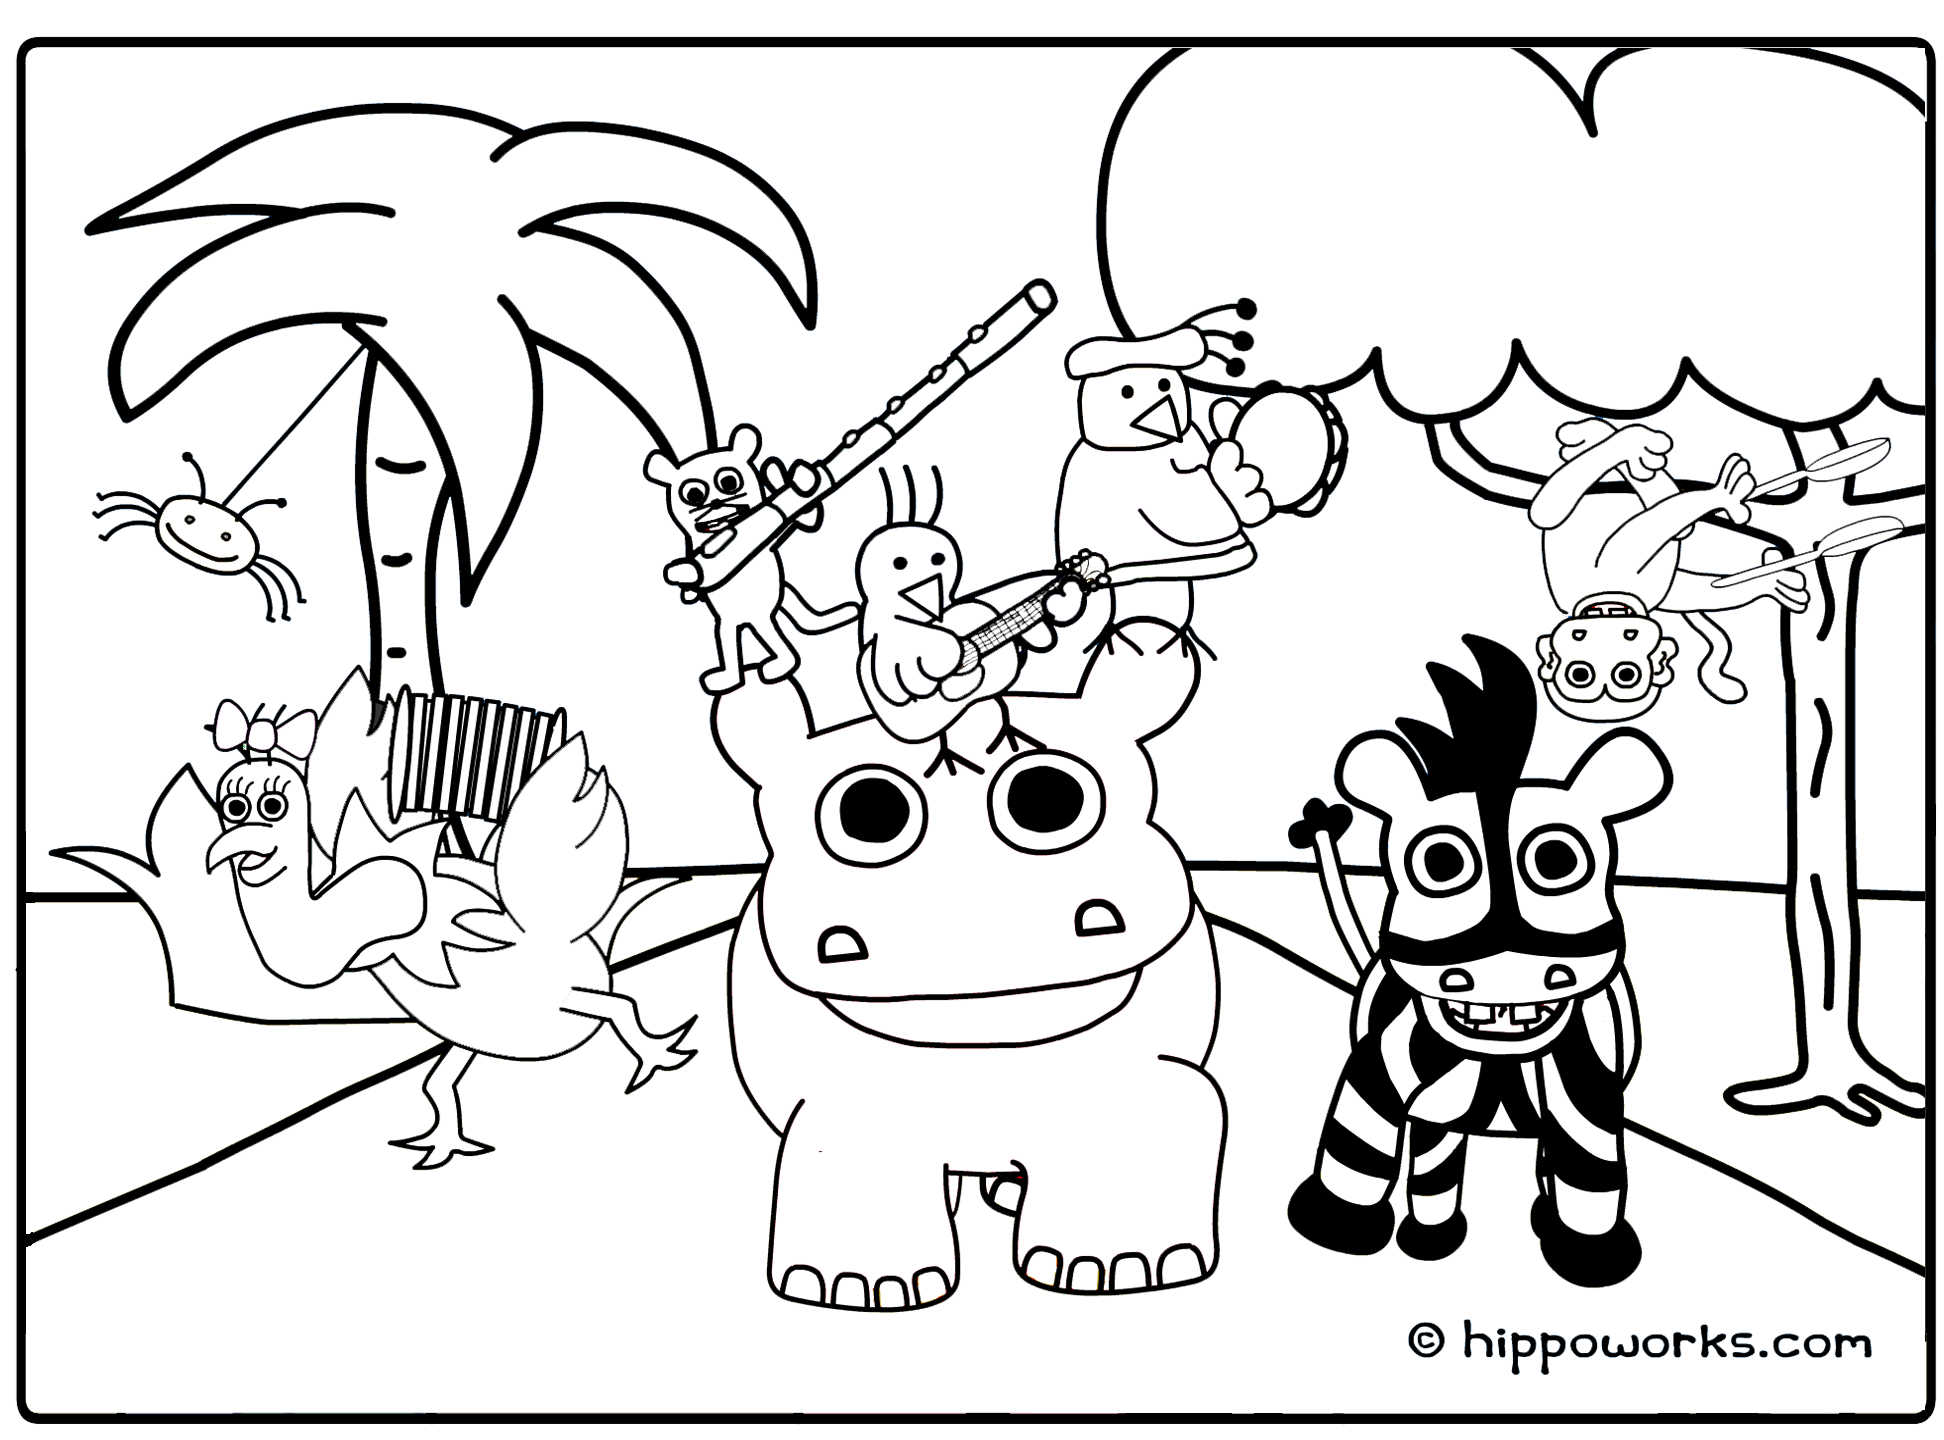 Action Top Jungle Animals Coloring Page Images top jungle animal coloring pages to download and print for free gallery images